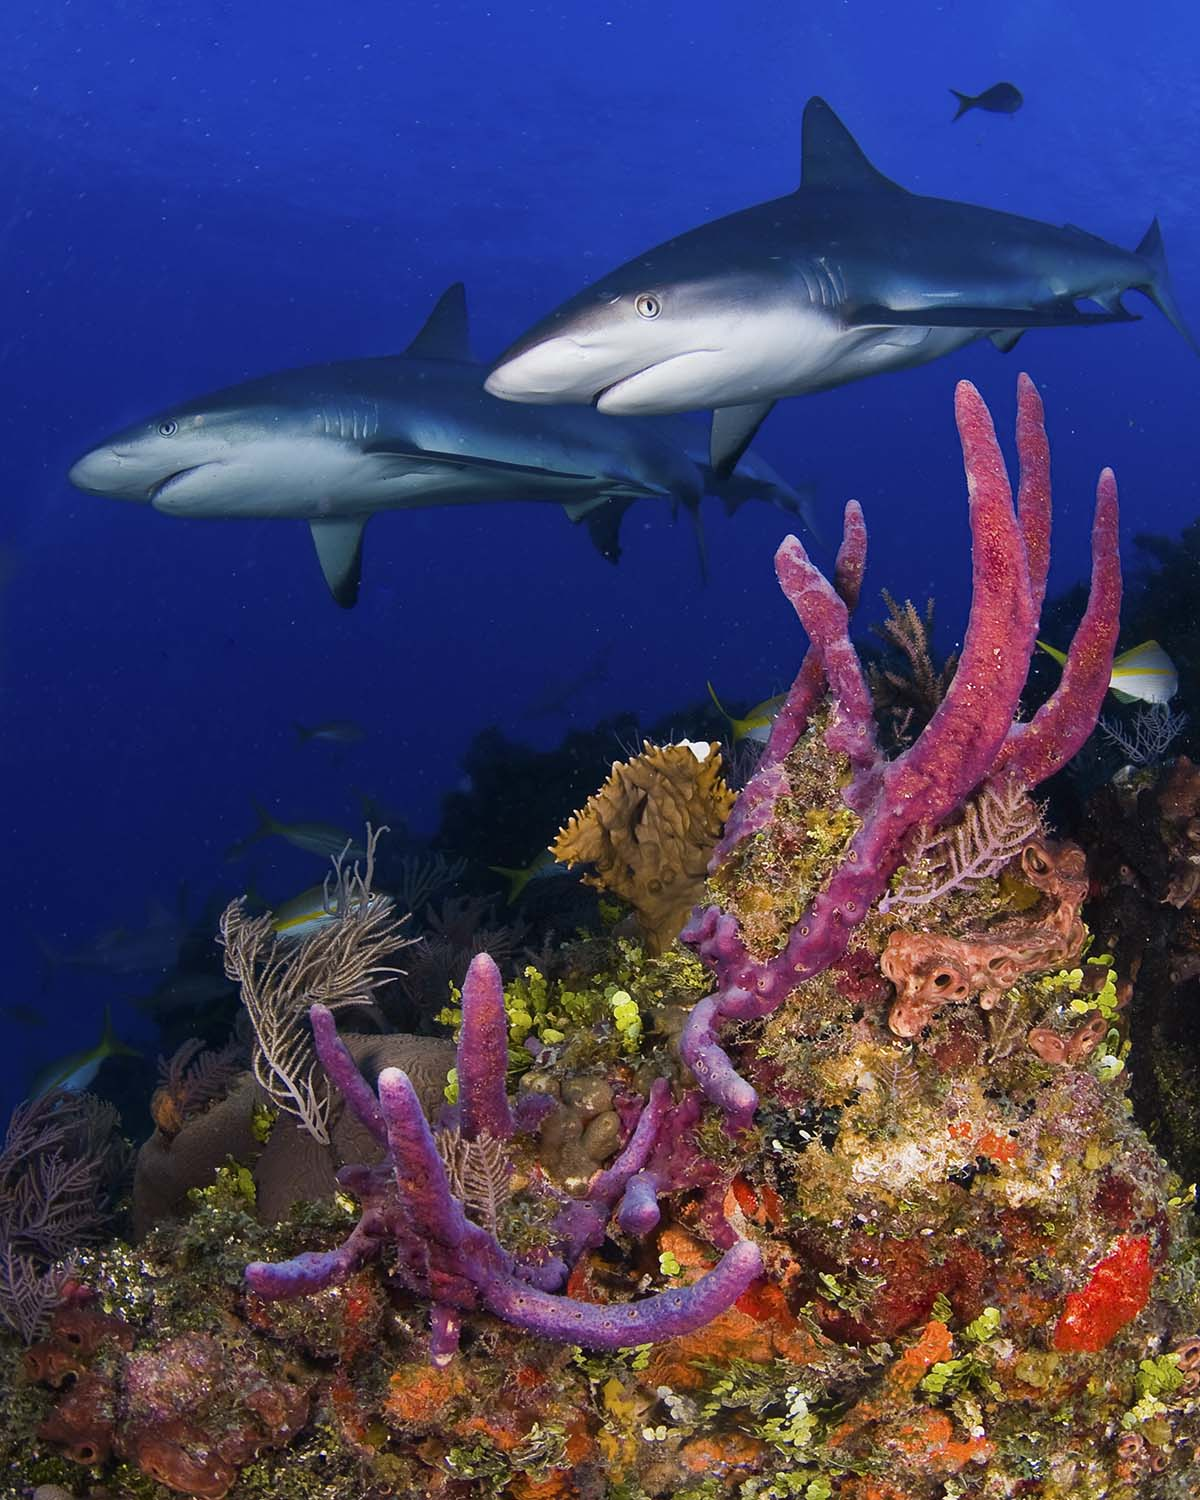 Caribbean Reef Sharks - photo by Jim Abernethy